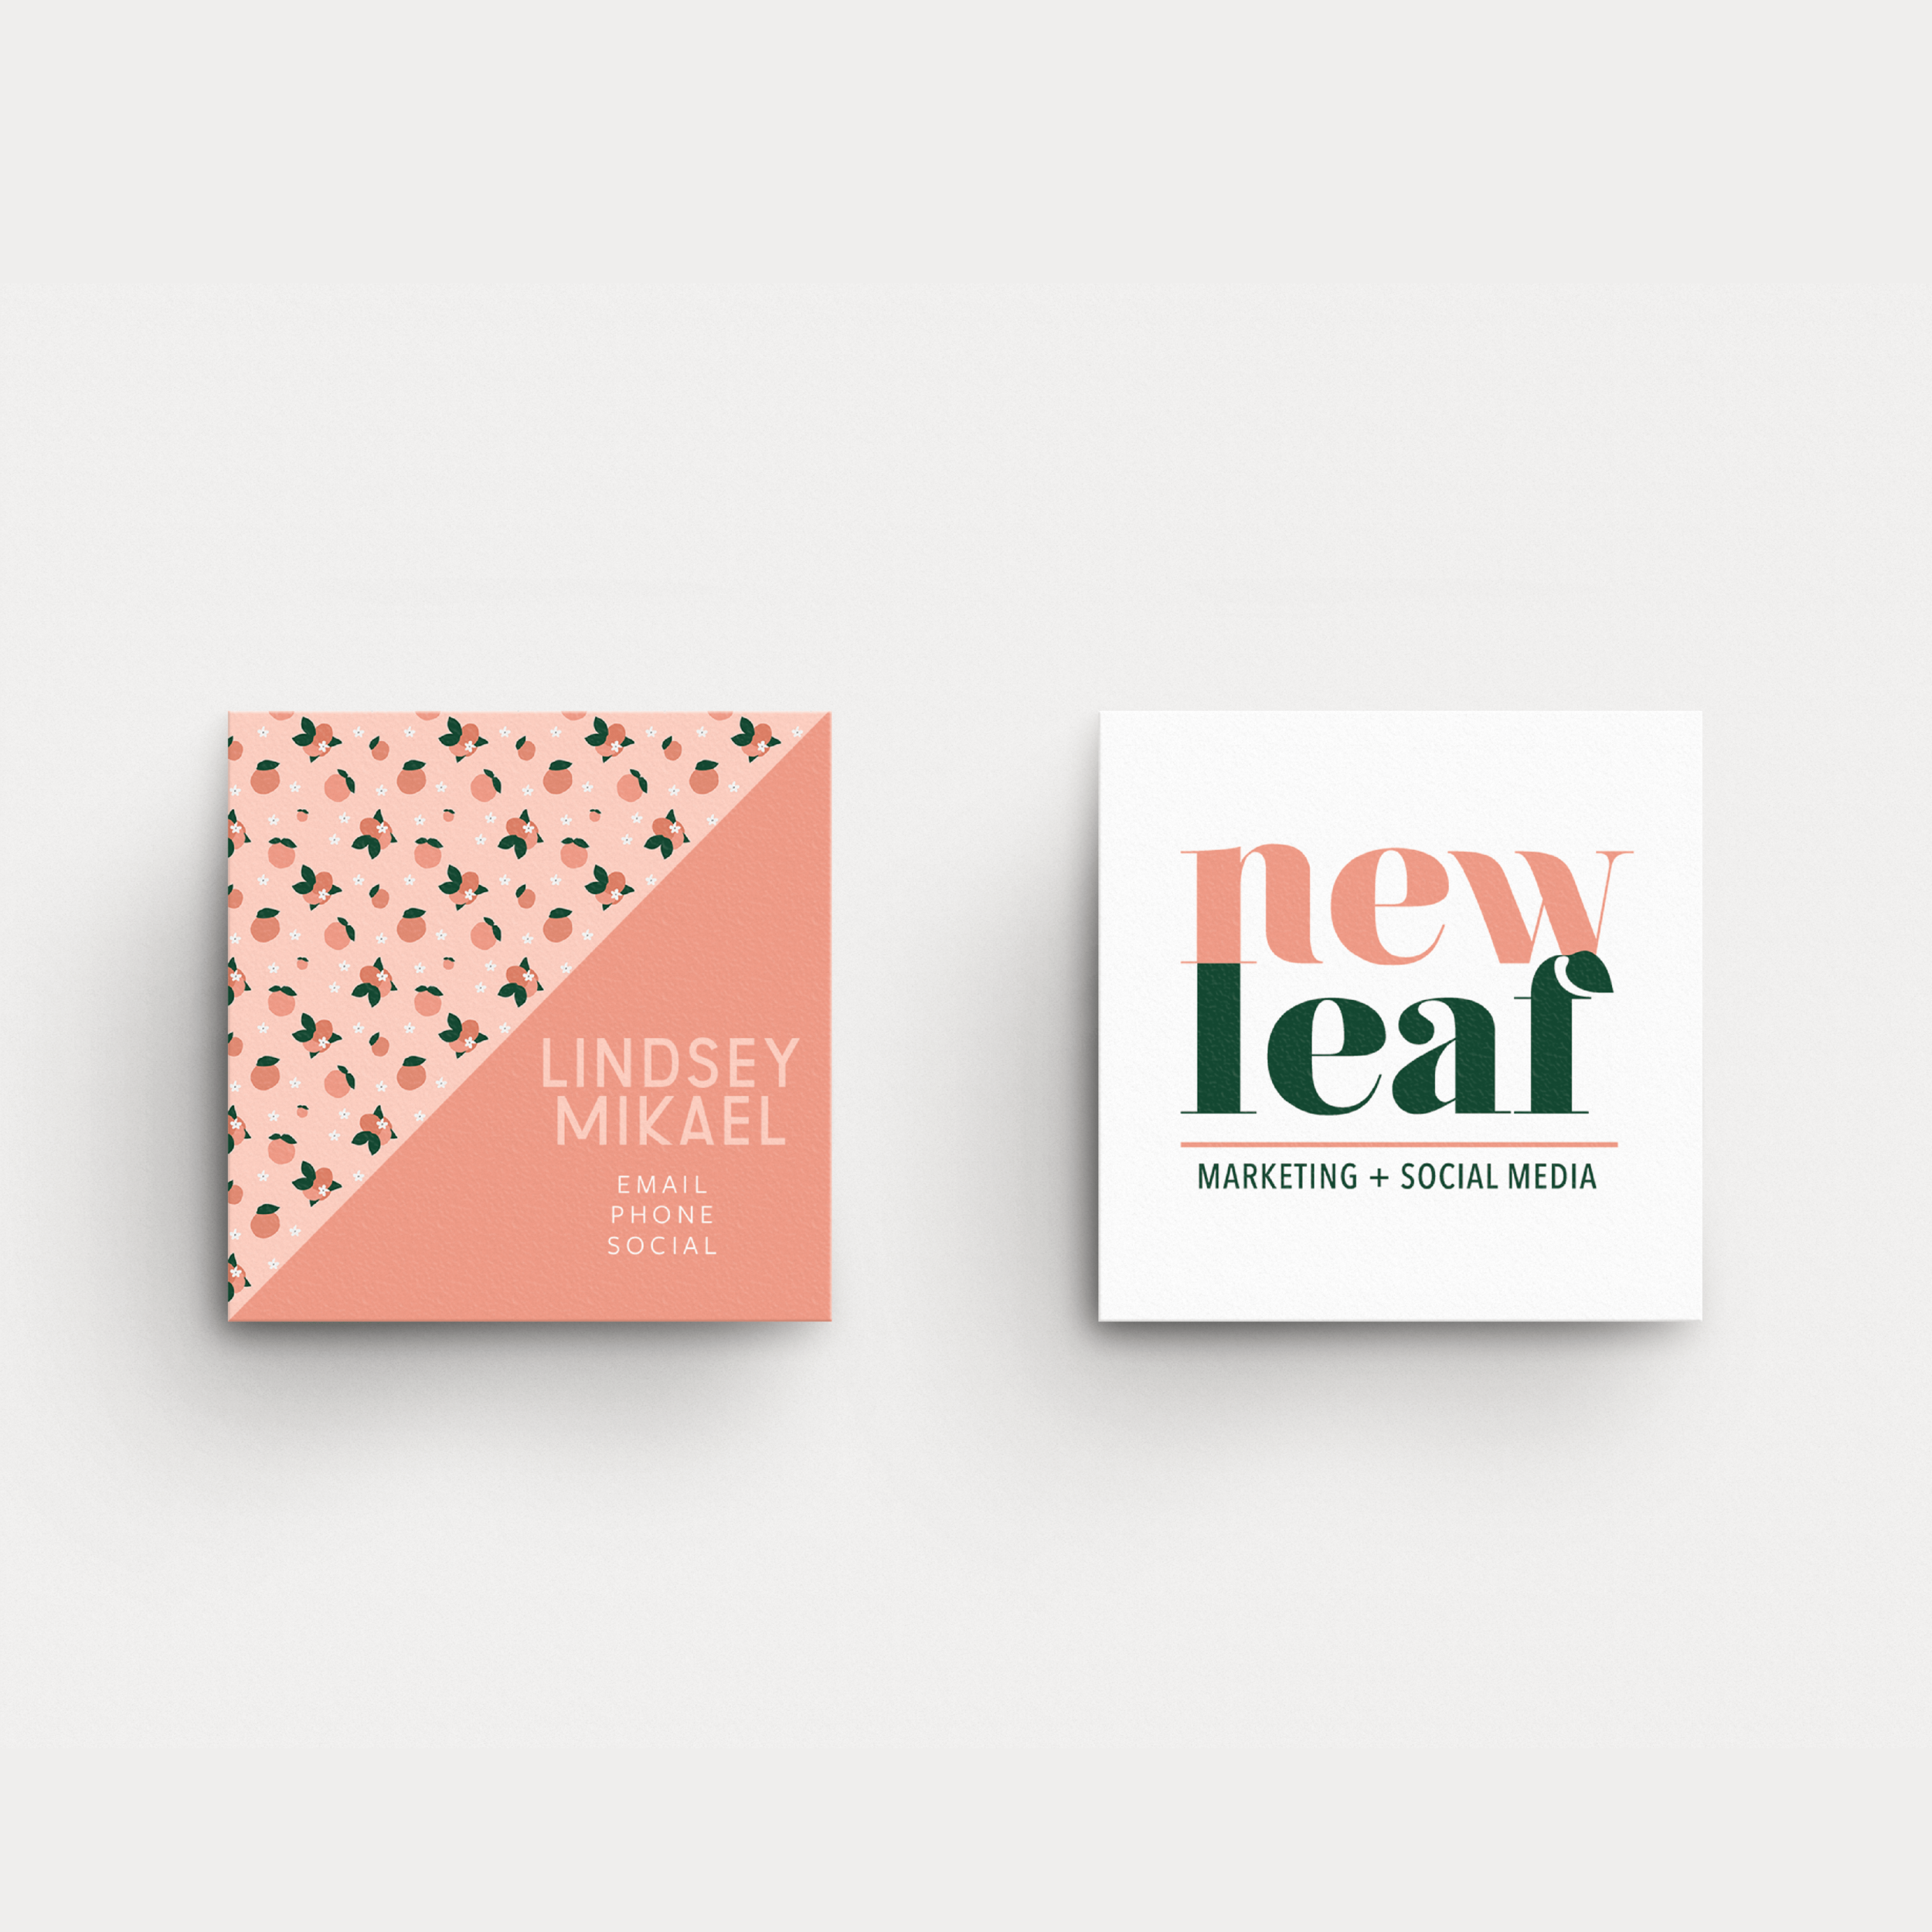 New Leaf Social Media and Marketing Houston Brand and Business Card Design by Kindly by Kelsea